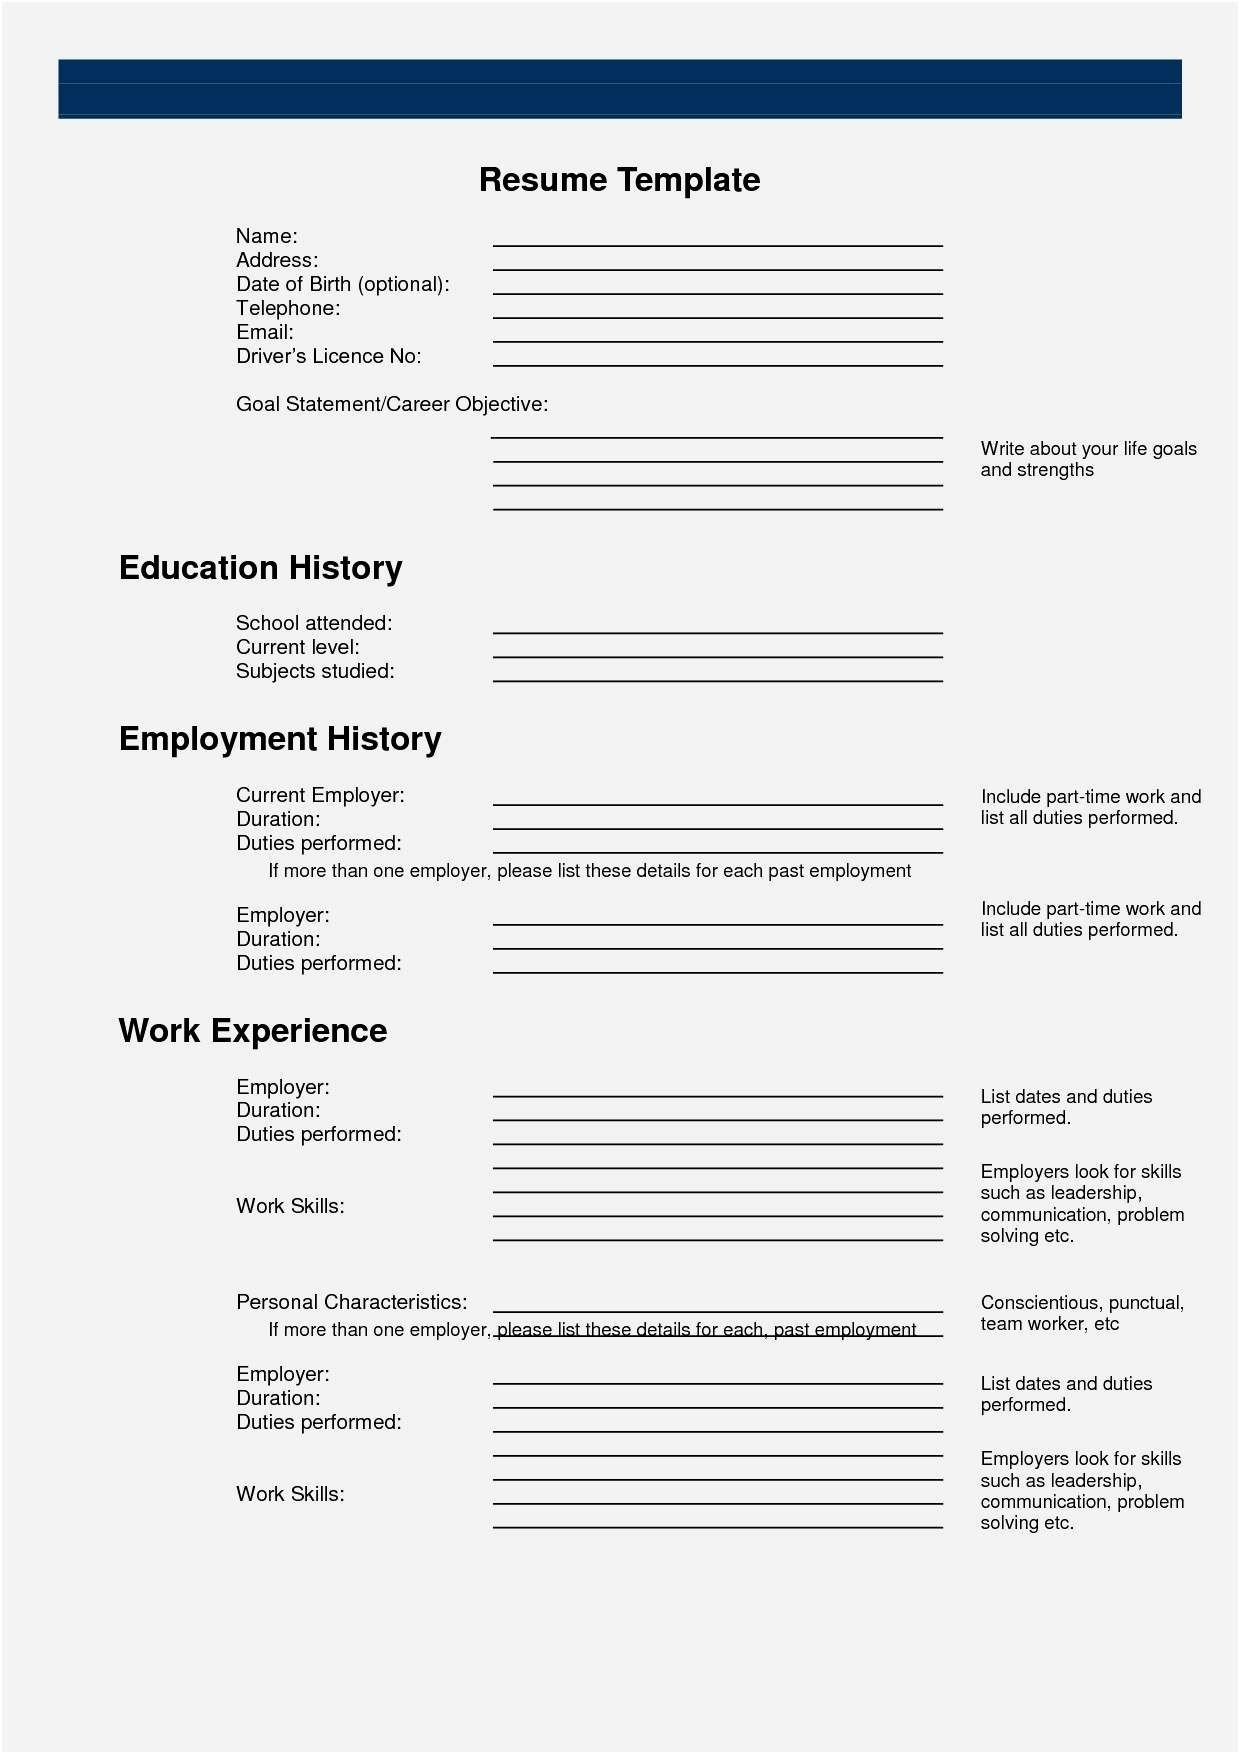 Entry Level Financial Analyst Resume - Entry Level Finance Resume Inspirational Financial Analyst Resume